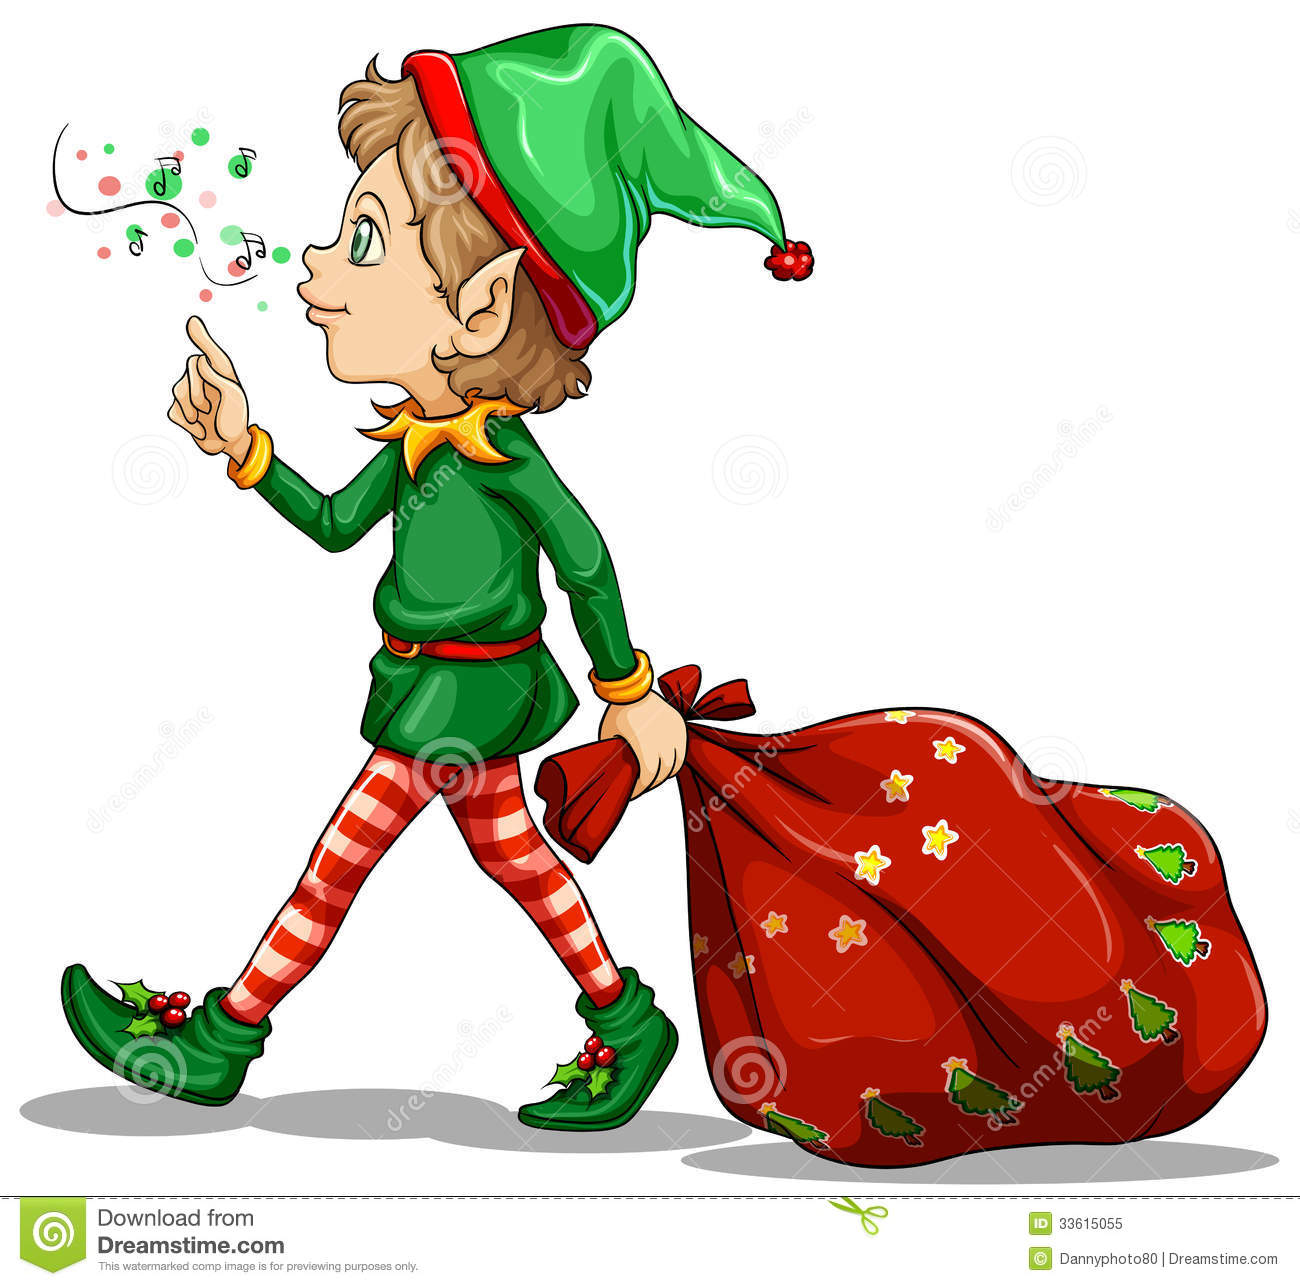 A Young Elf Dragging A Sack Of Gifts Royalty Free Stock Photo Image 33615055